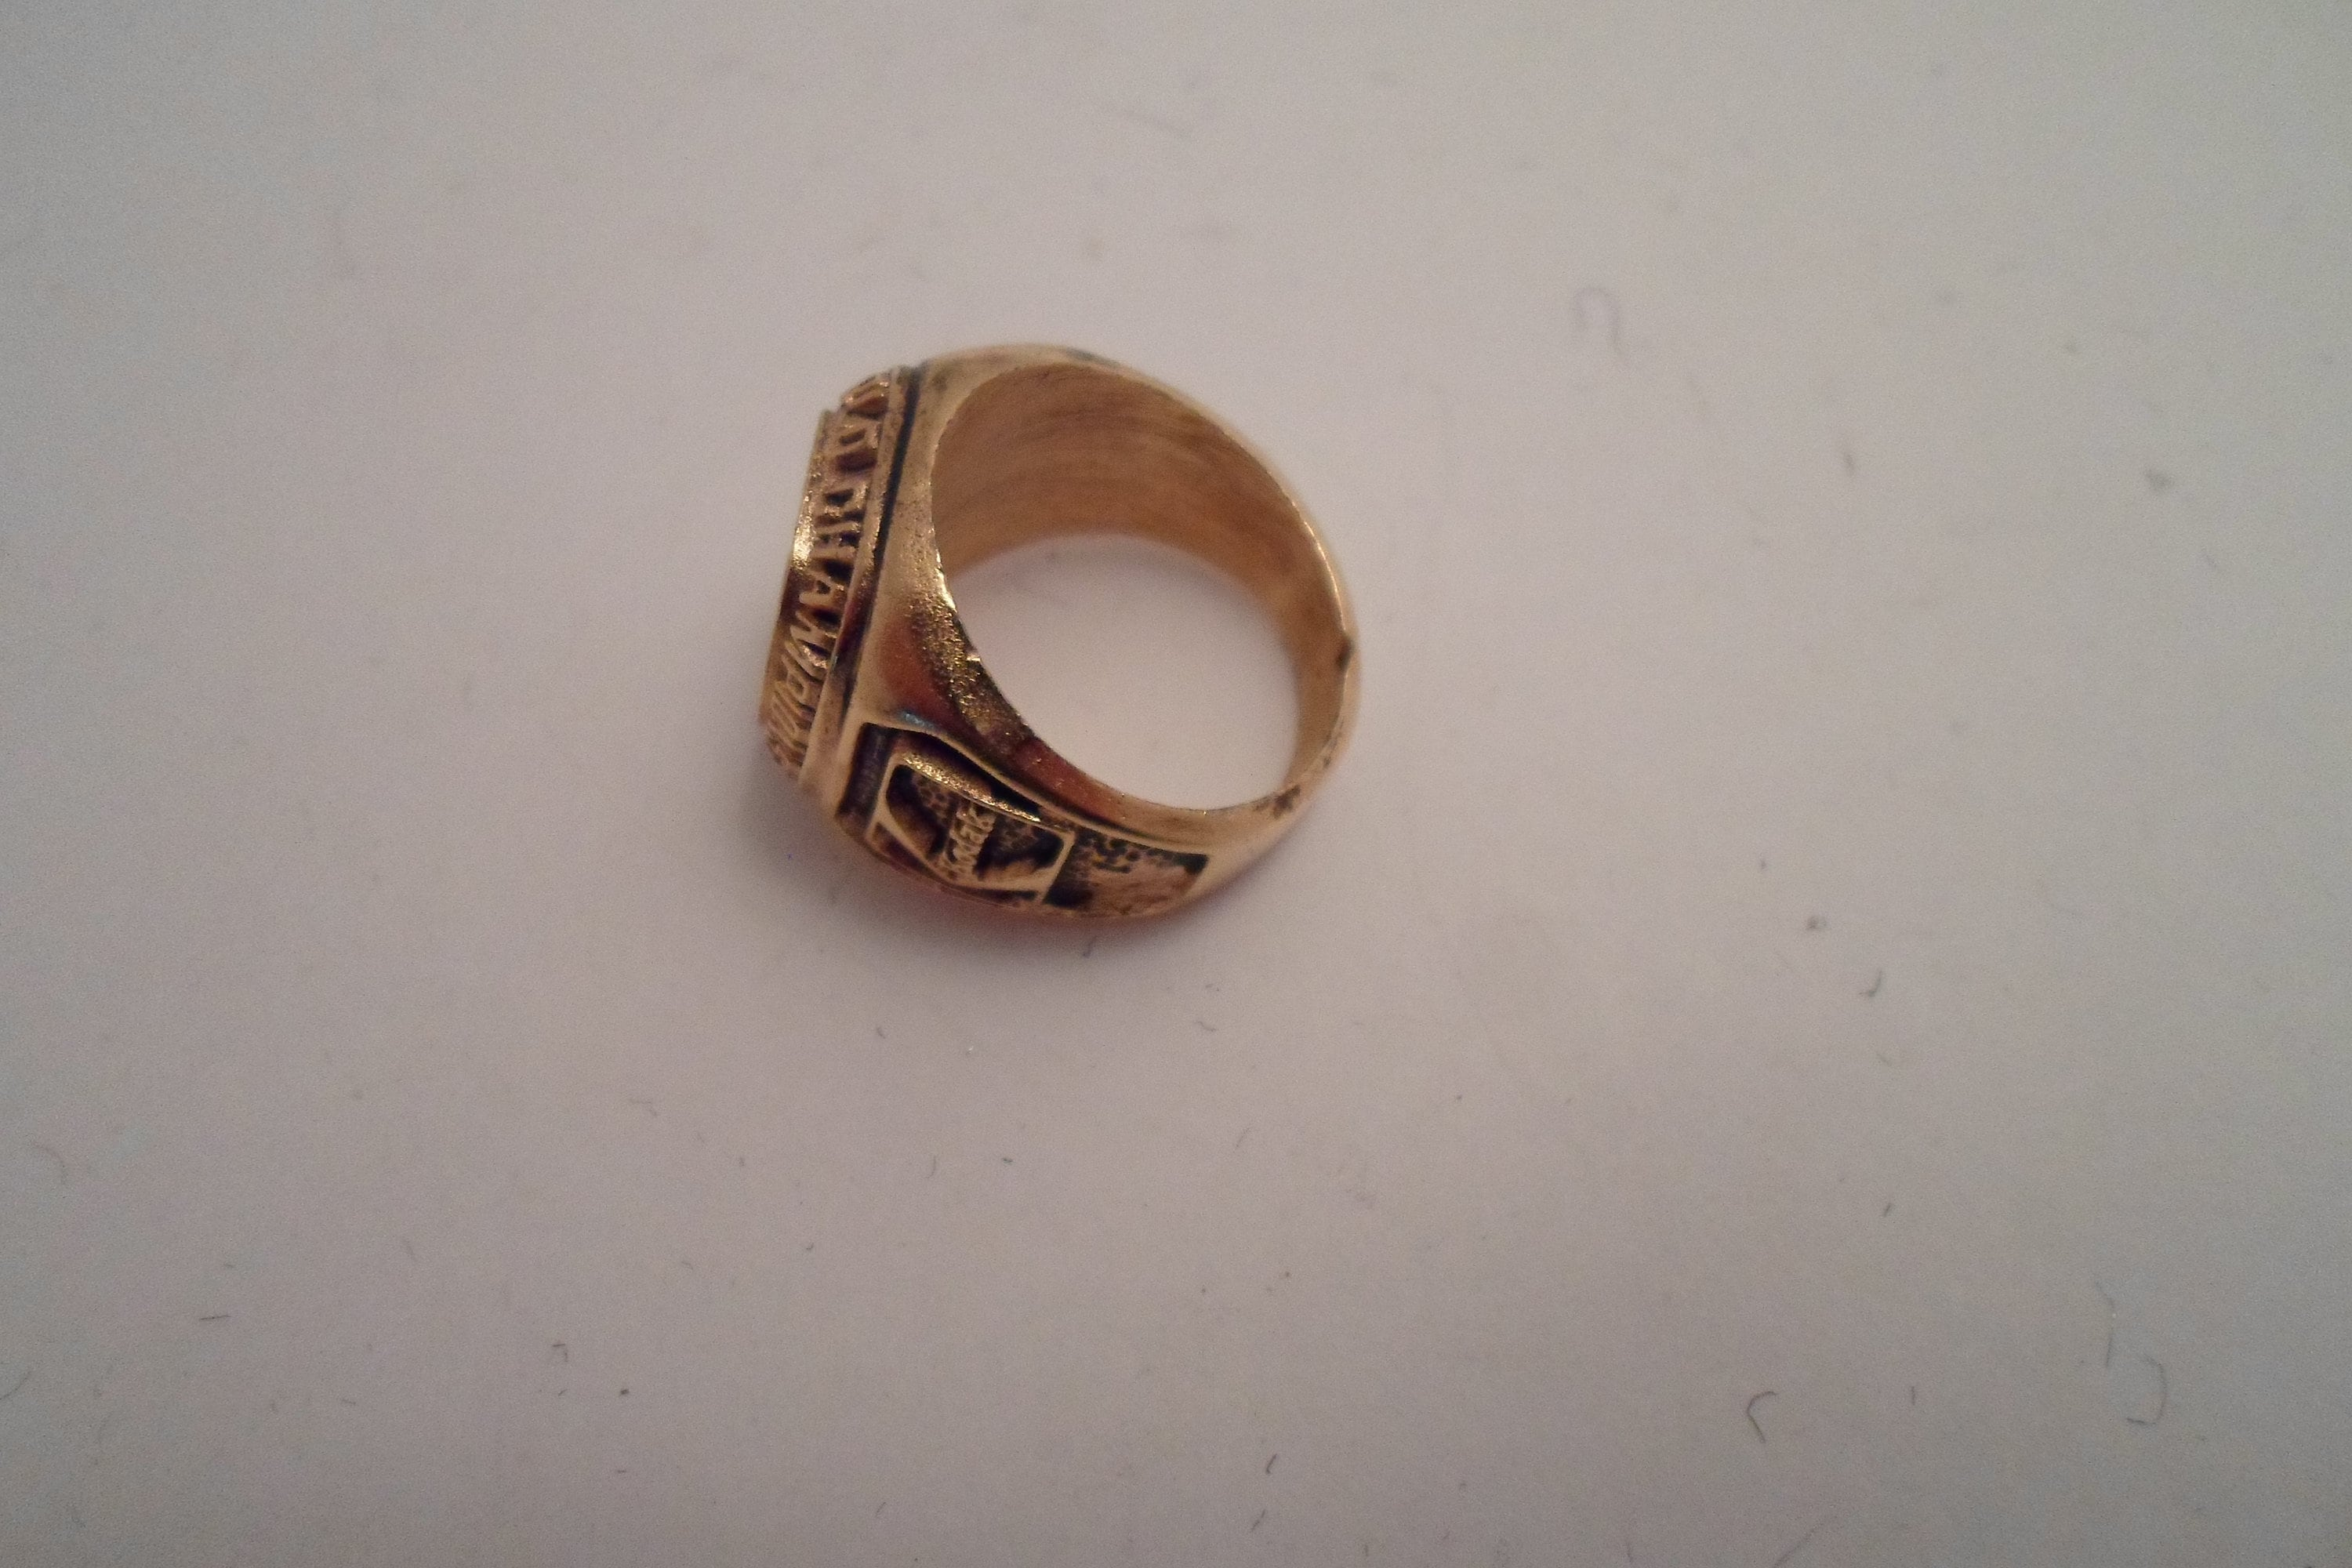 0ecfe543f8a603 Vintage Chicago Bulls World Championship Ring 91 92 93 Michael Jordan  Scottie Pippin Wow. gallery photo gallery photo gallery photo ...